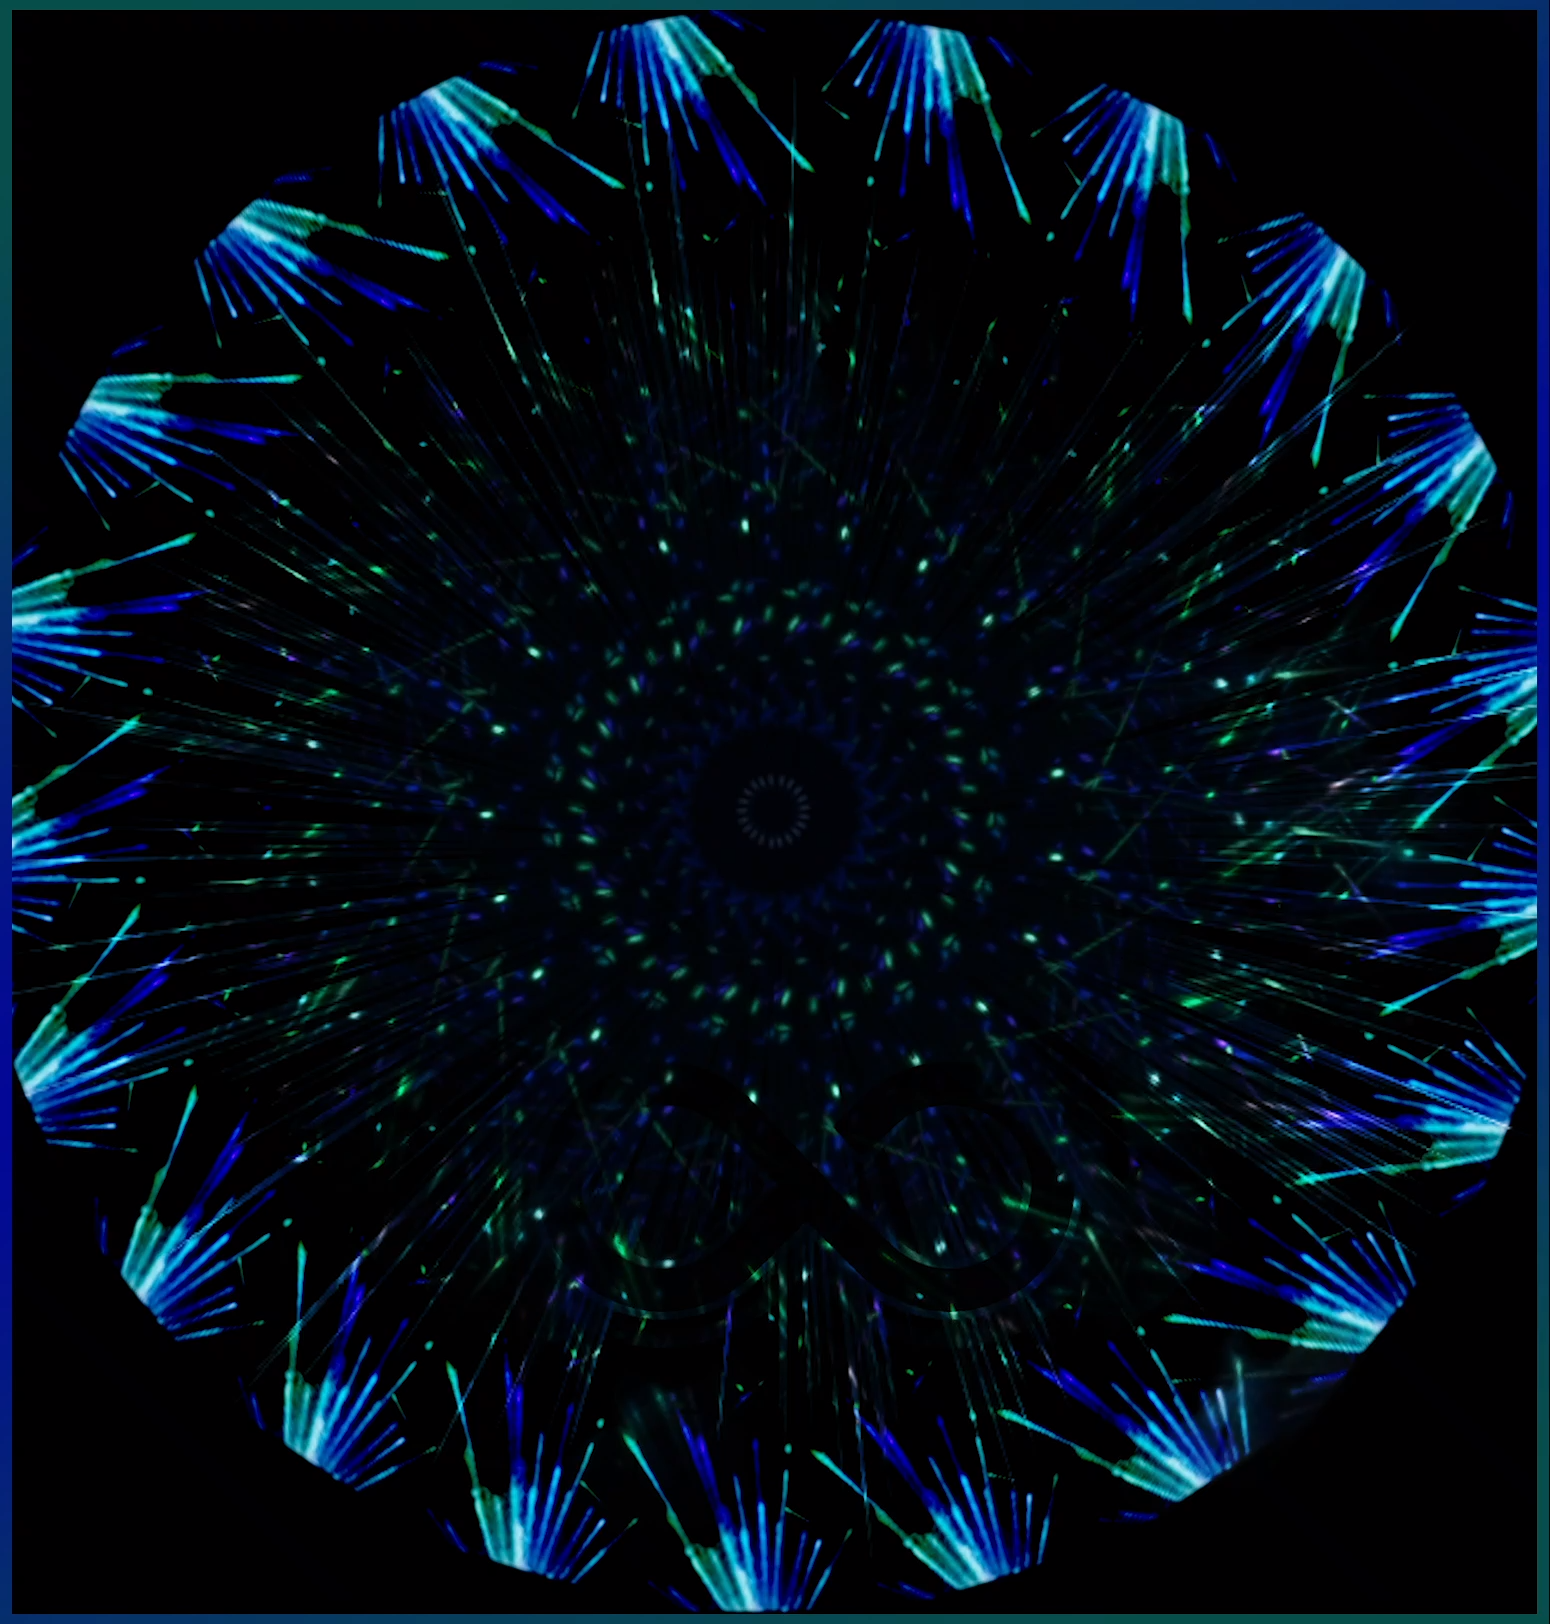 THE FIREWORKS EYE #motiongraphic #CREATIVESTARCURRENCY # ...